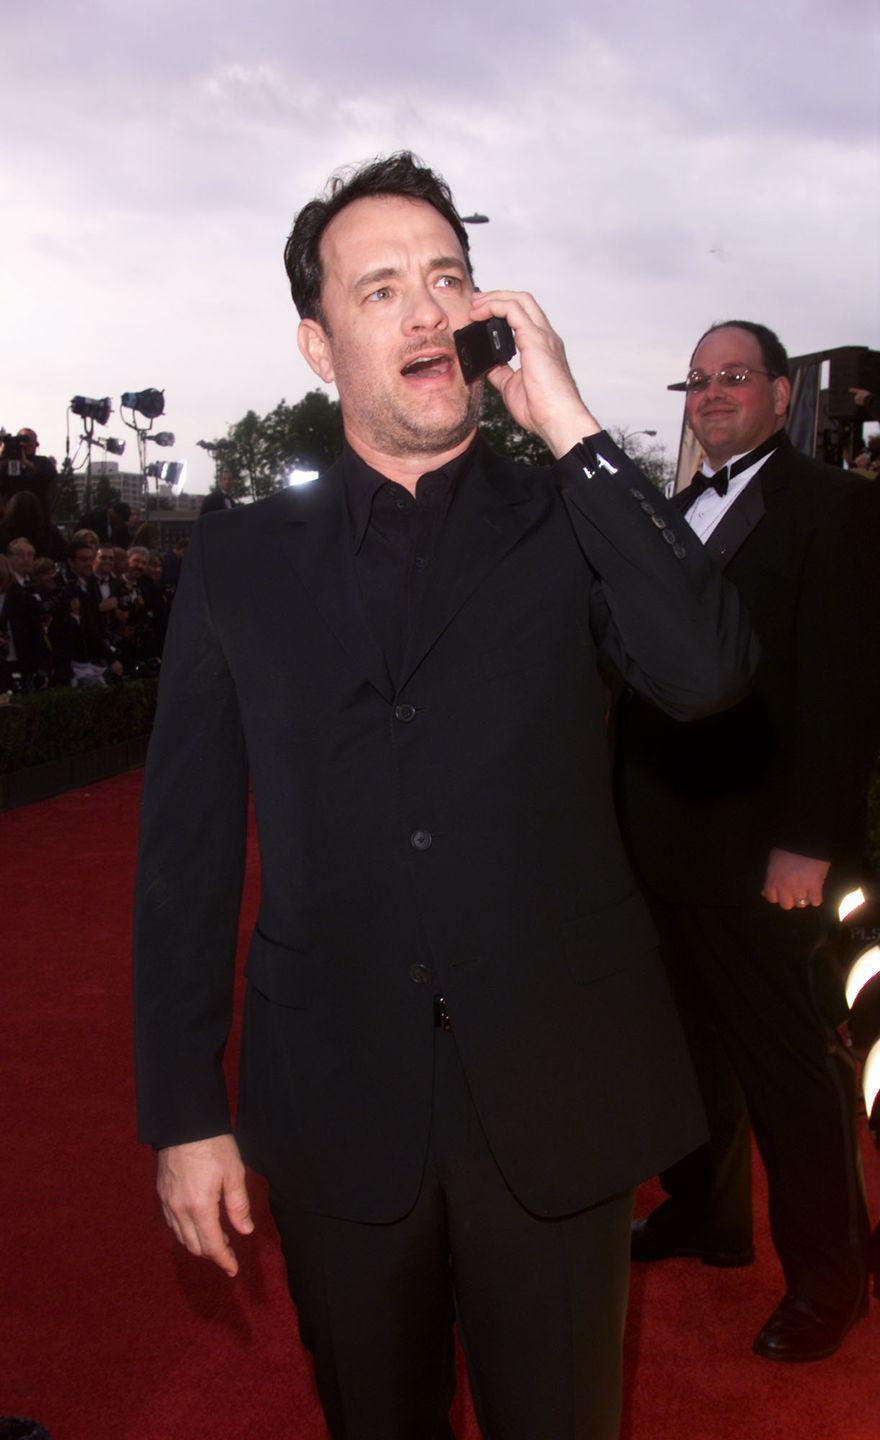 <p>Apparently Tom Hanks is on a fan's cell right now, speaking to their relative, because he's perfect.</p>